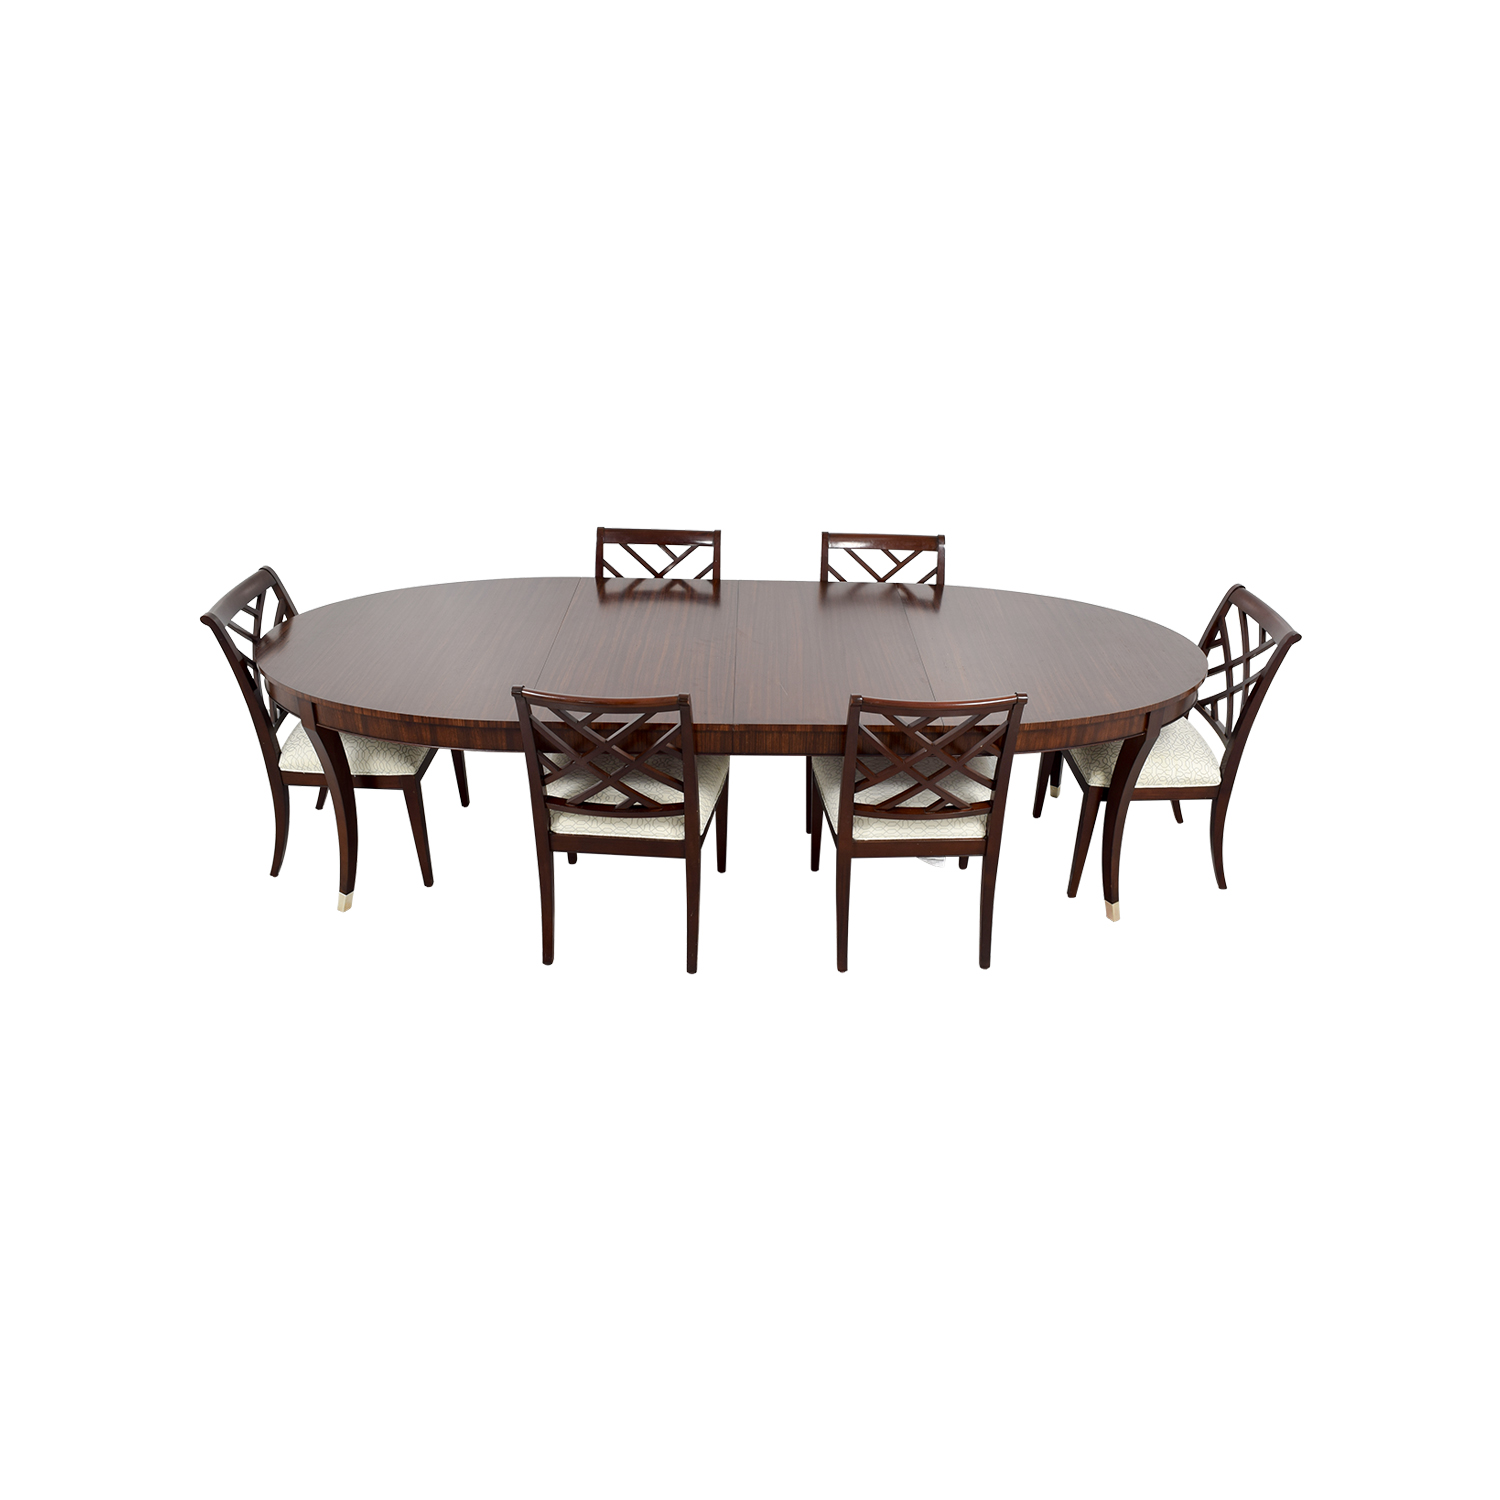 Used Ethan Allen Coffee Tables: Ethan Allen Ethan Allen Hathaway Dining Set / Tables